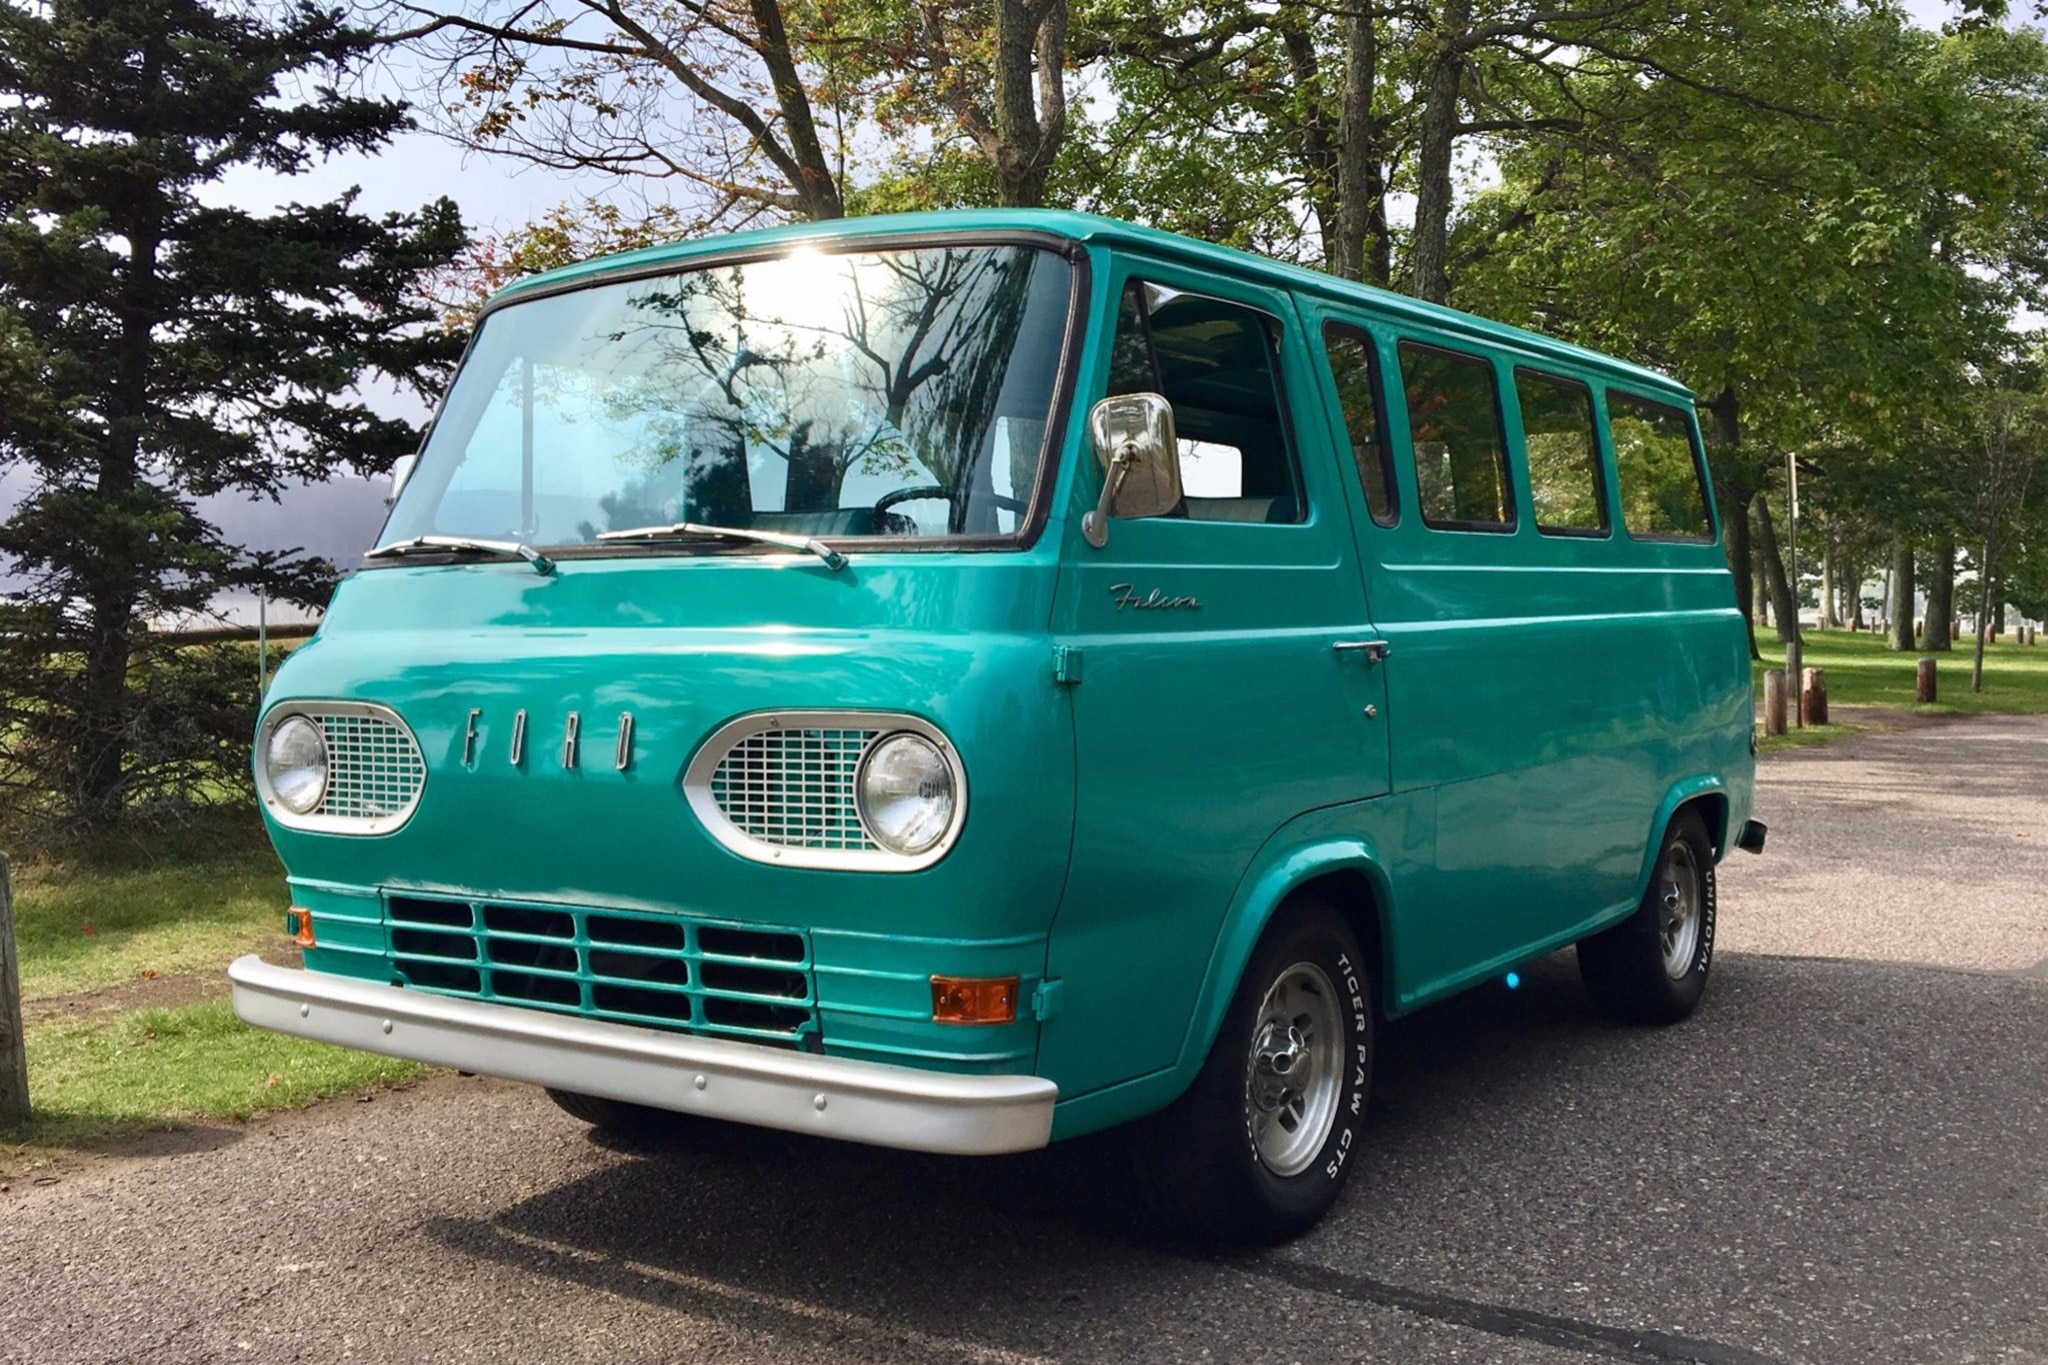 Used Ford Cars Trucks Suvs Vans For Sale: Just Listed: 1964 Ford Econoline